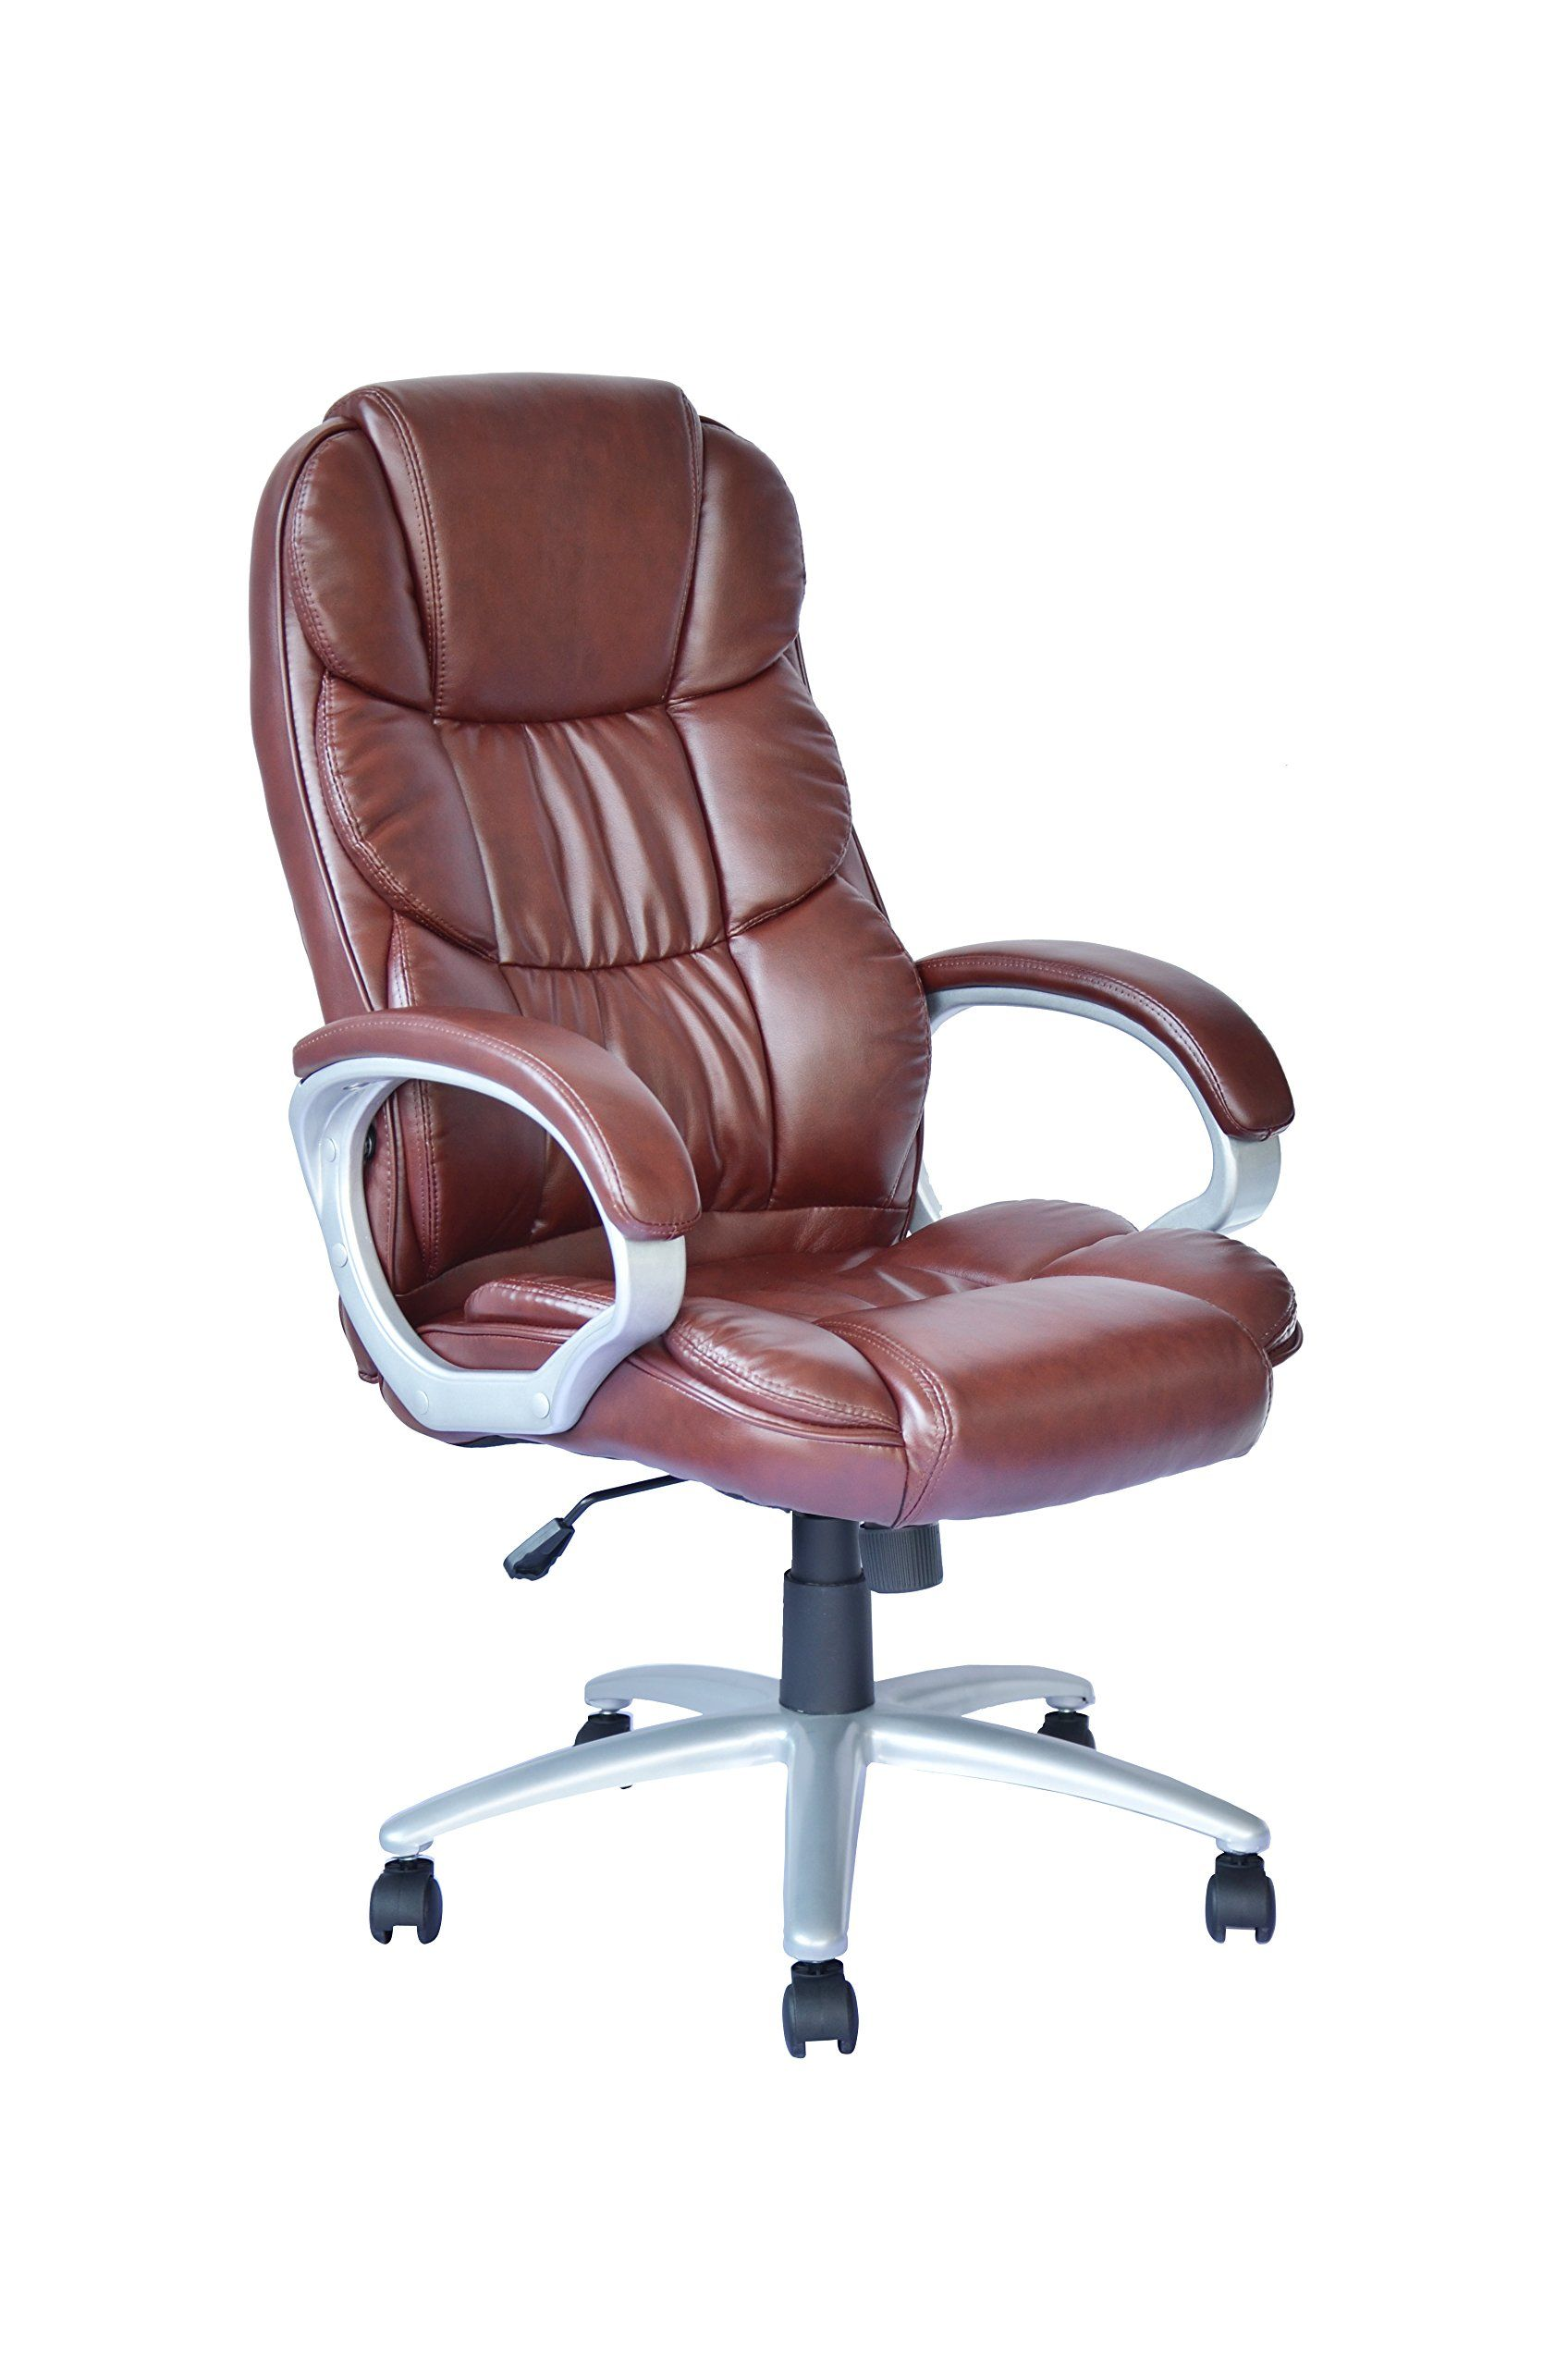 This Is The High Back Desk Chair In Brown That I Bought For The Desk In The Library Mark I With Images